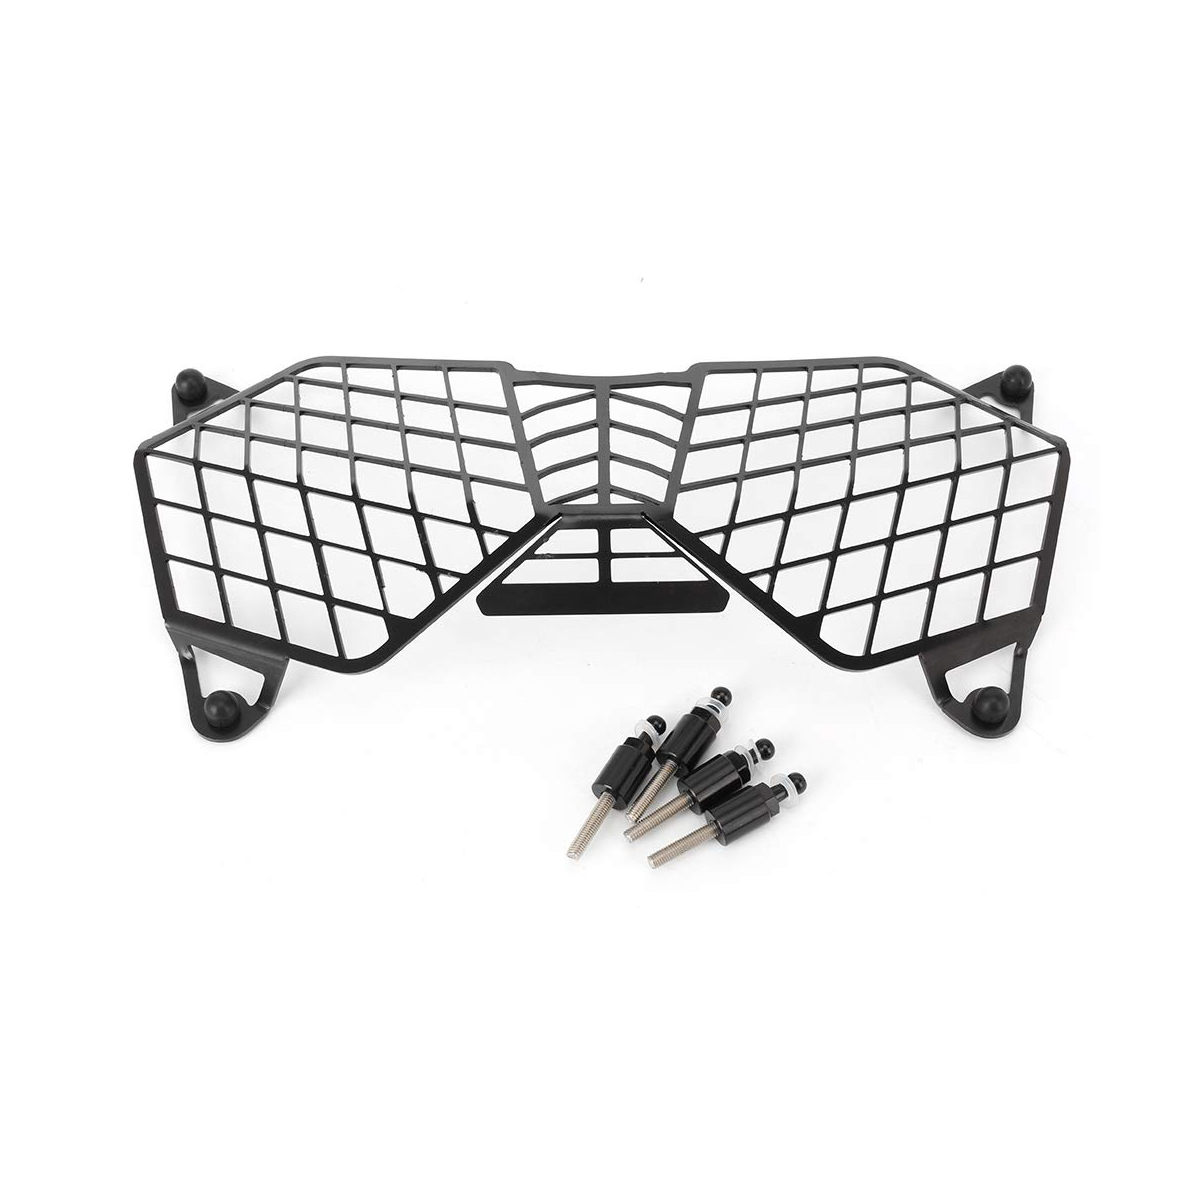 New Black Motorcycle Headlight Grille Light Cover